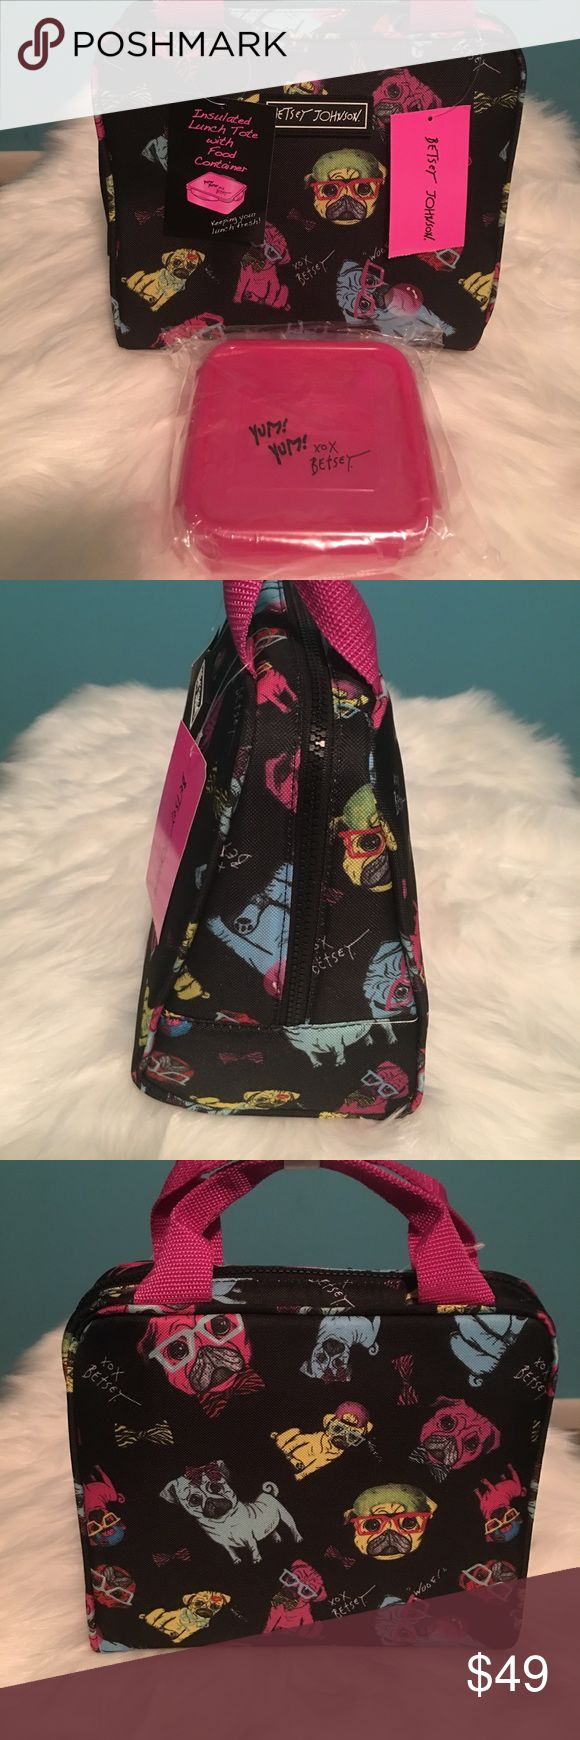 Betsey Johnson 2 Piece Pug Insulated Lunch Tote Brand New With Tags Betsey Johnson 2 Piece Pug Puppy Insulated Lunch Tote With Sandwich Container Betsey Johnson Bags